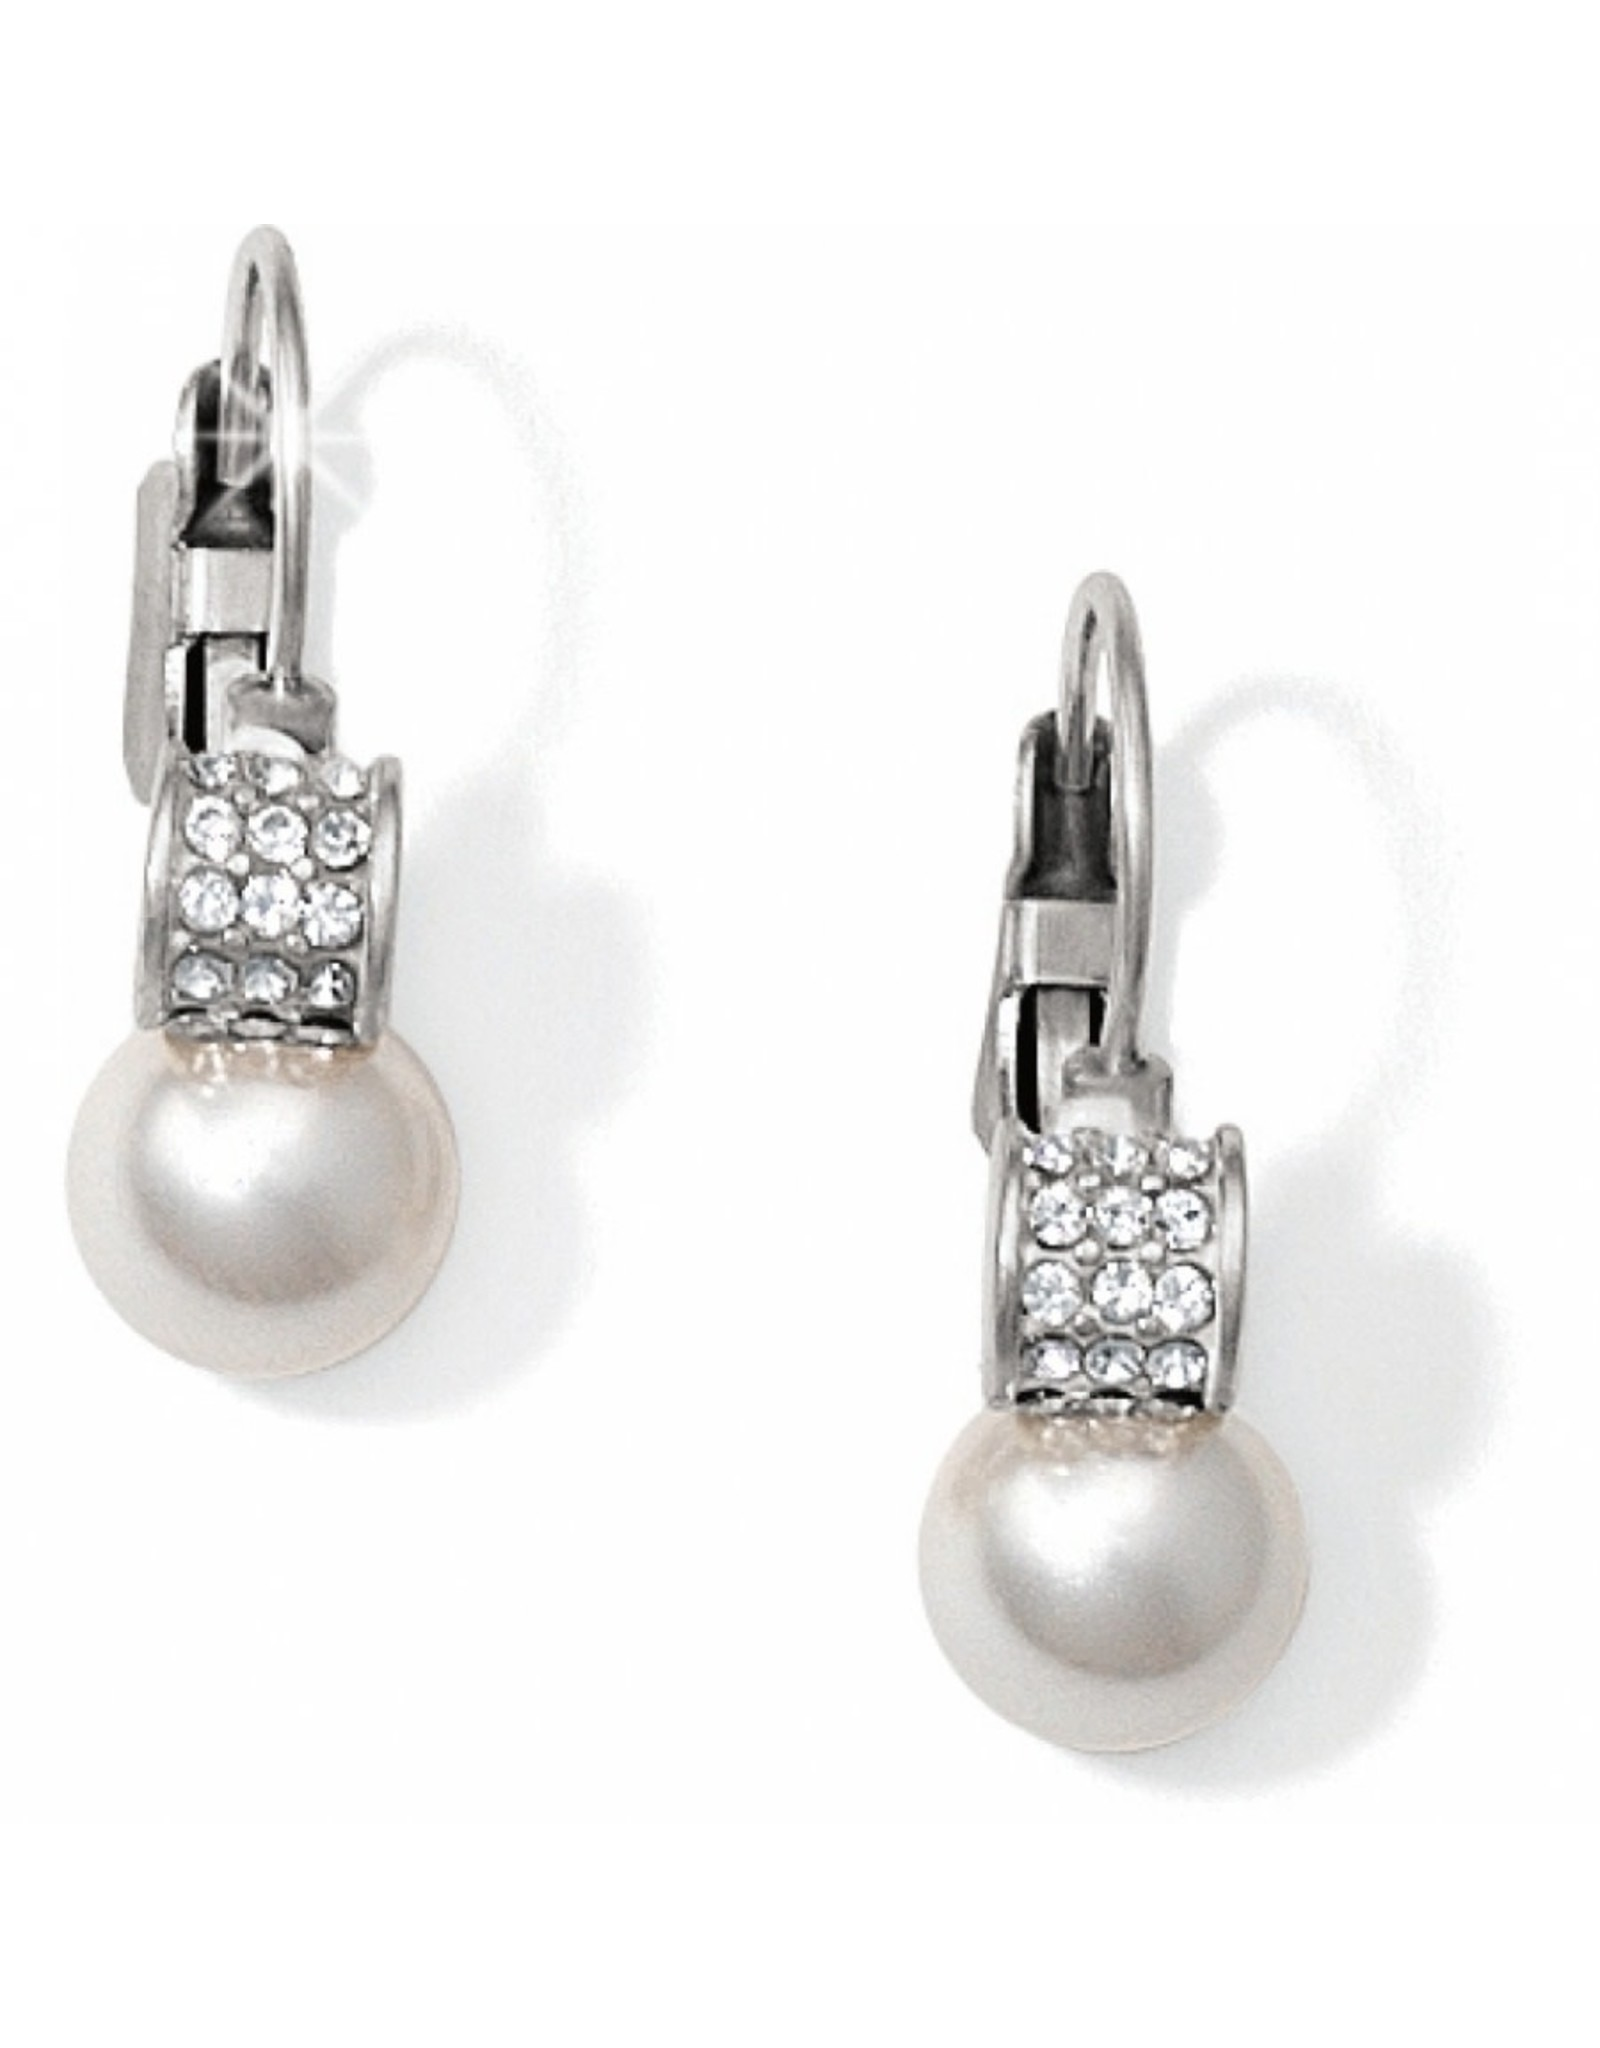 Brighton Meridian Petite Pearl Leverback Earrings